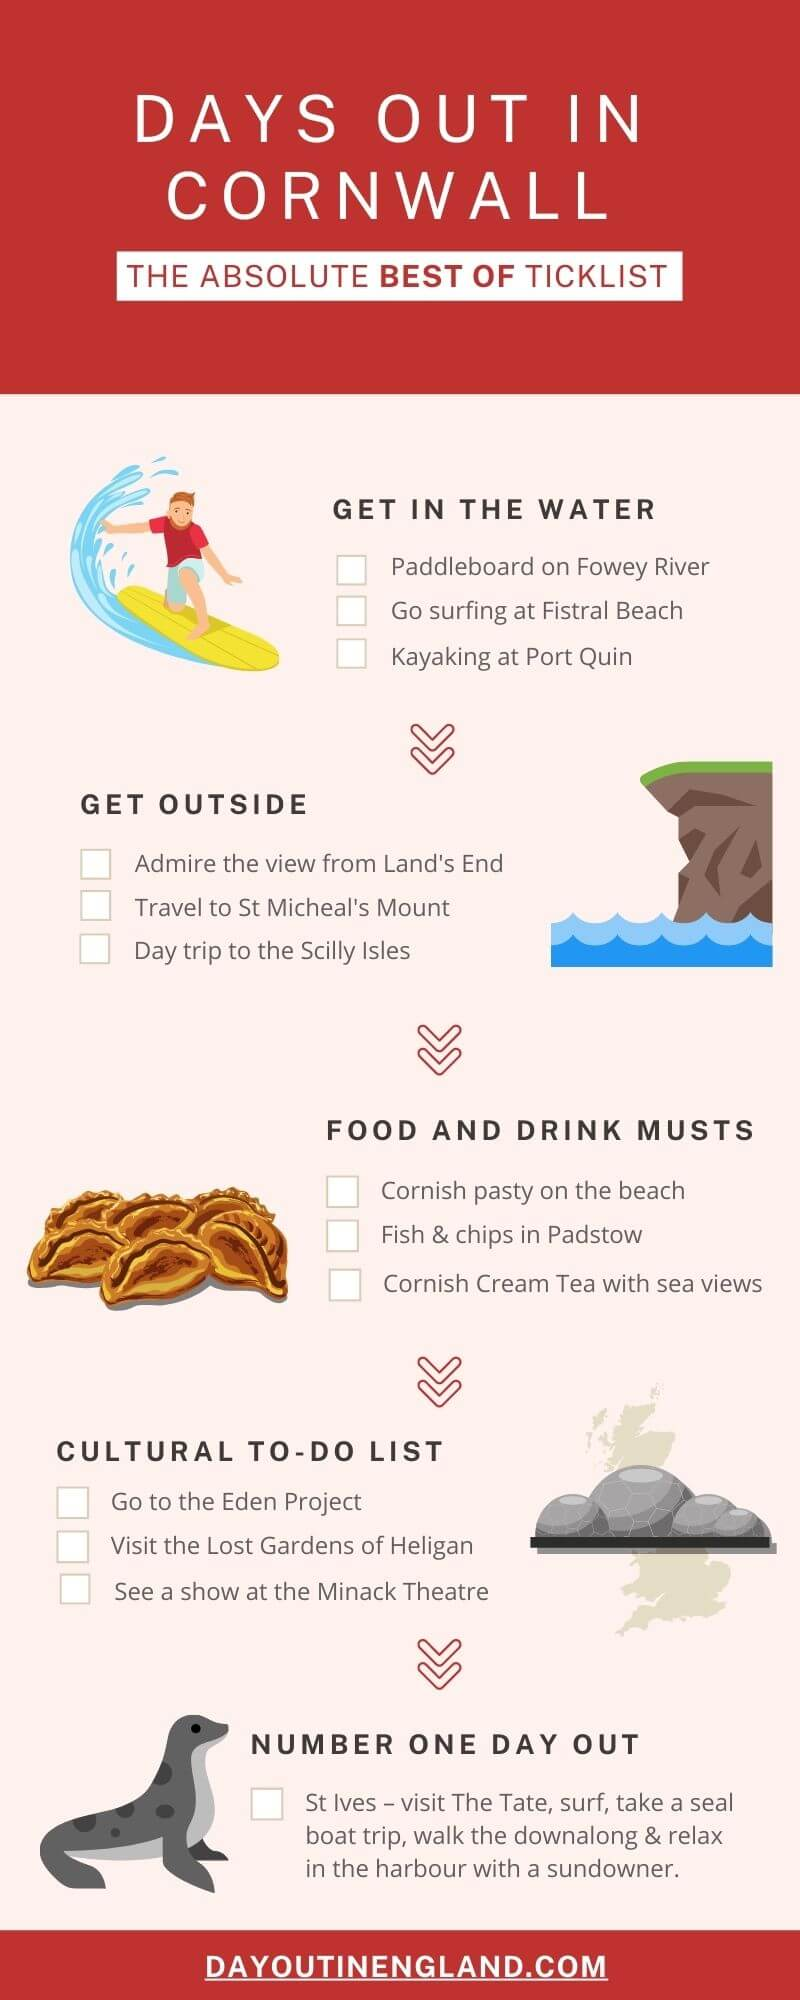 Best Days Out in Cornwall infographic